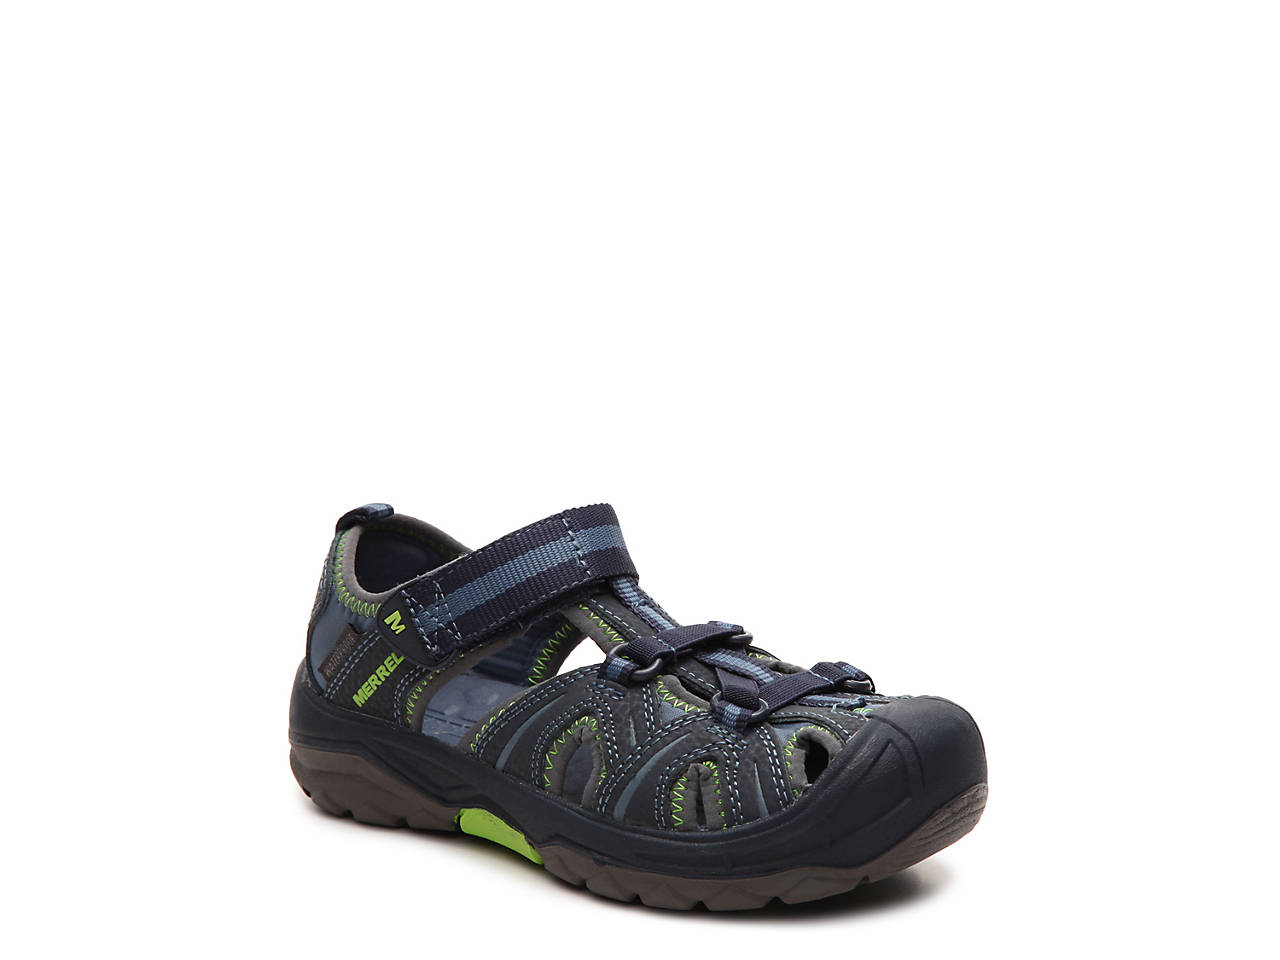 0b8264c317e6 Merrell Hydro Toddler   Youth Sandal Kids Shoes